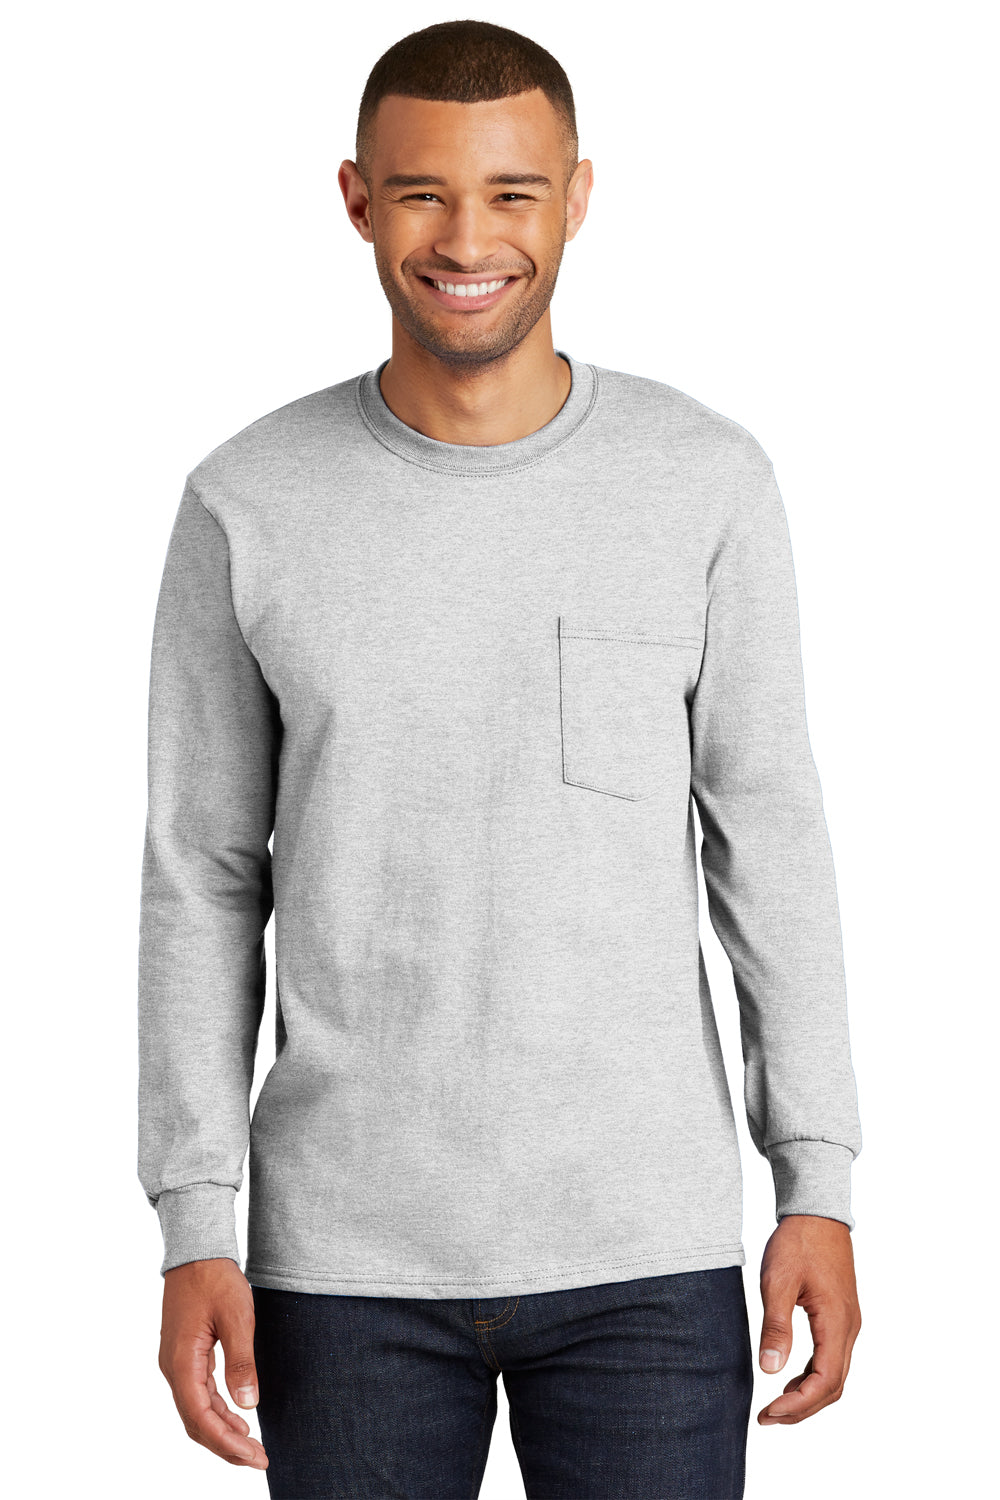 Port & Company PC61LSP Mens Essential Long Sleeve Crewneck T-Shirt w/ Pocket Ash Grey Front